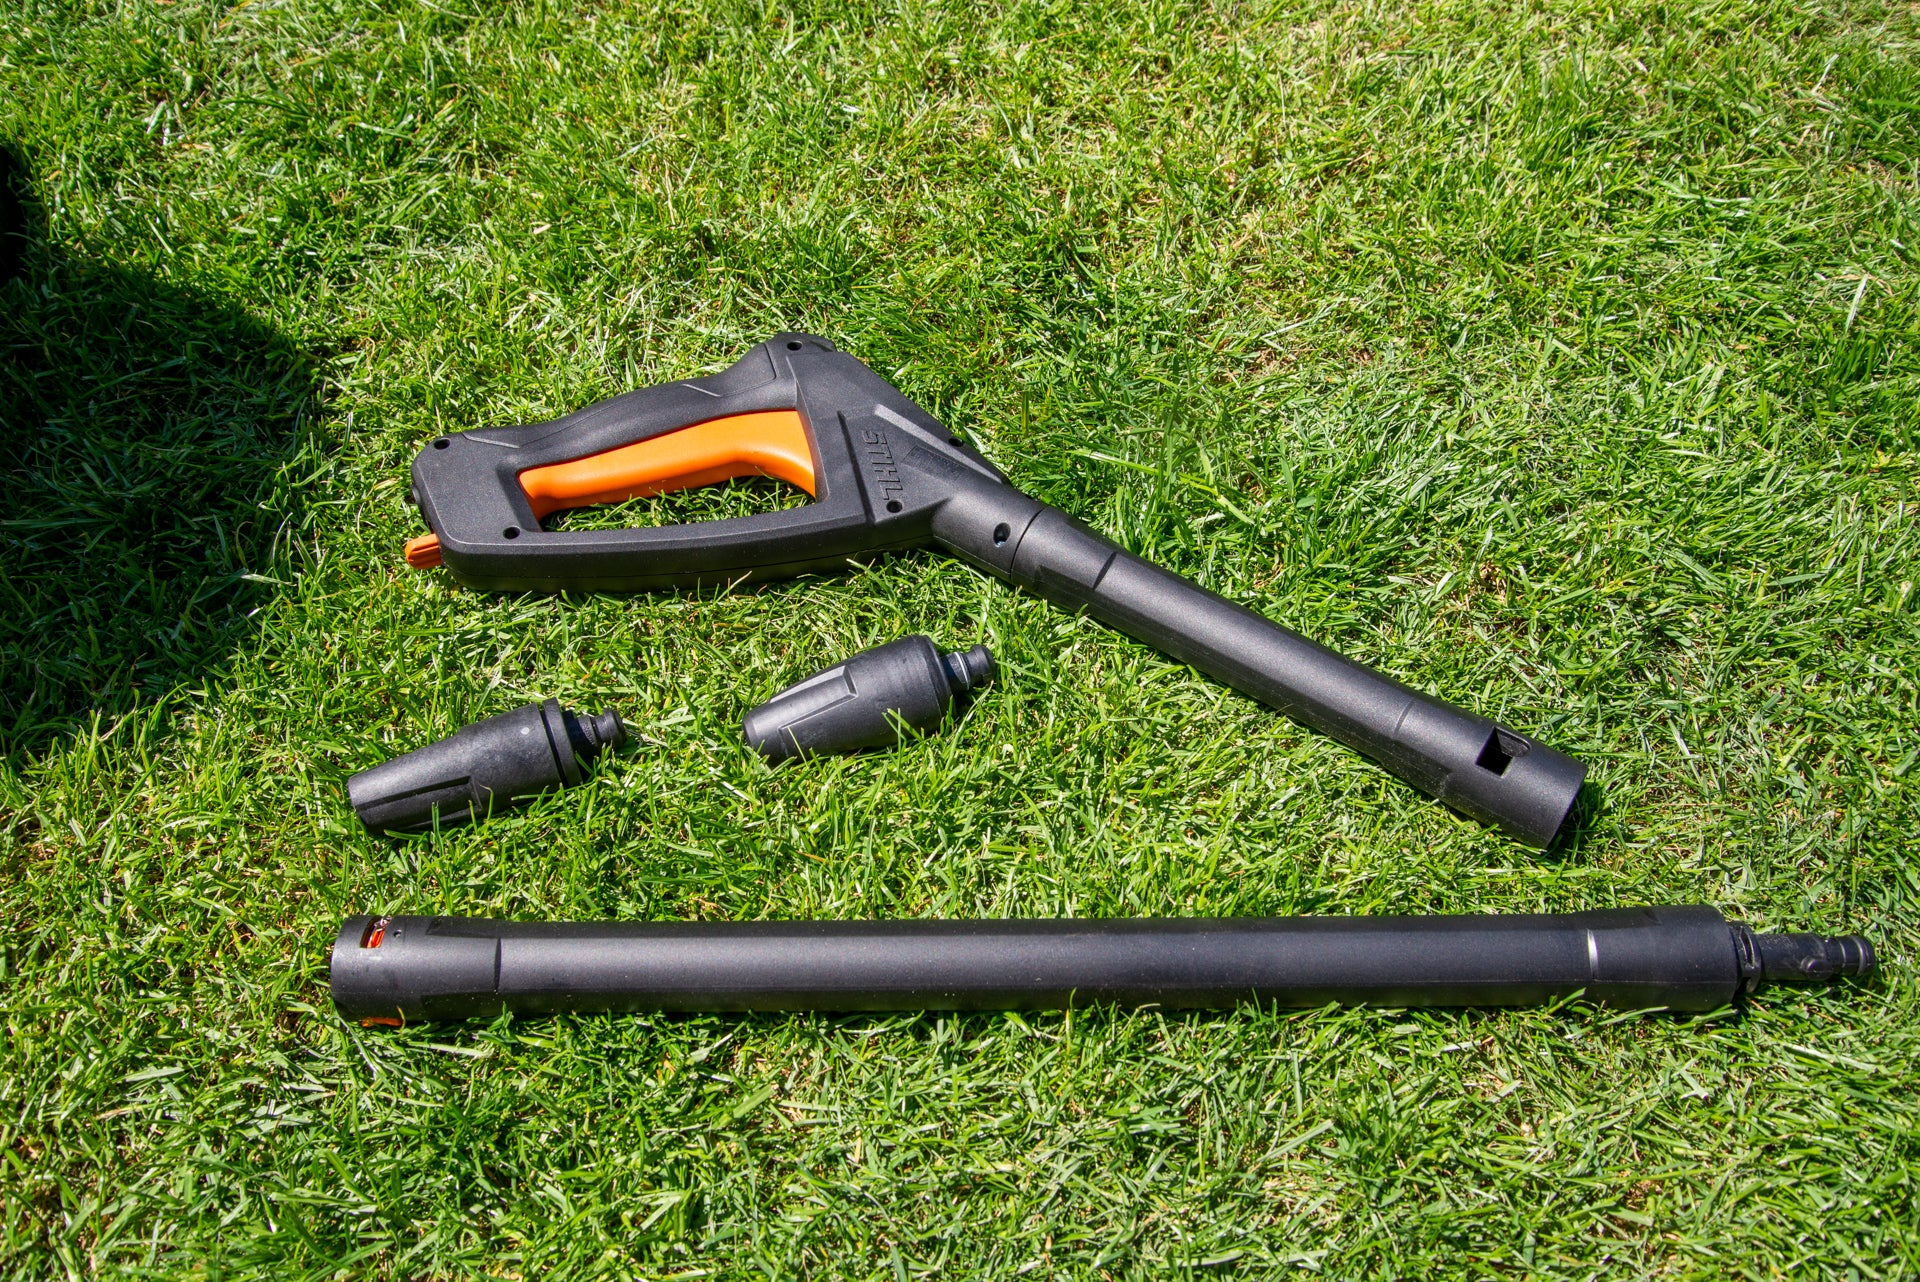 Stihl RE 110 handle and nozzles